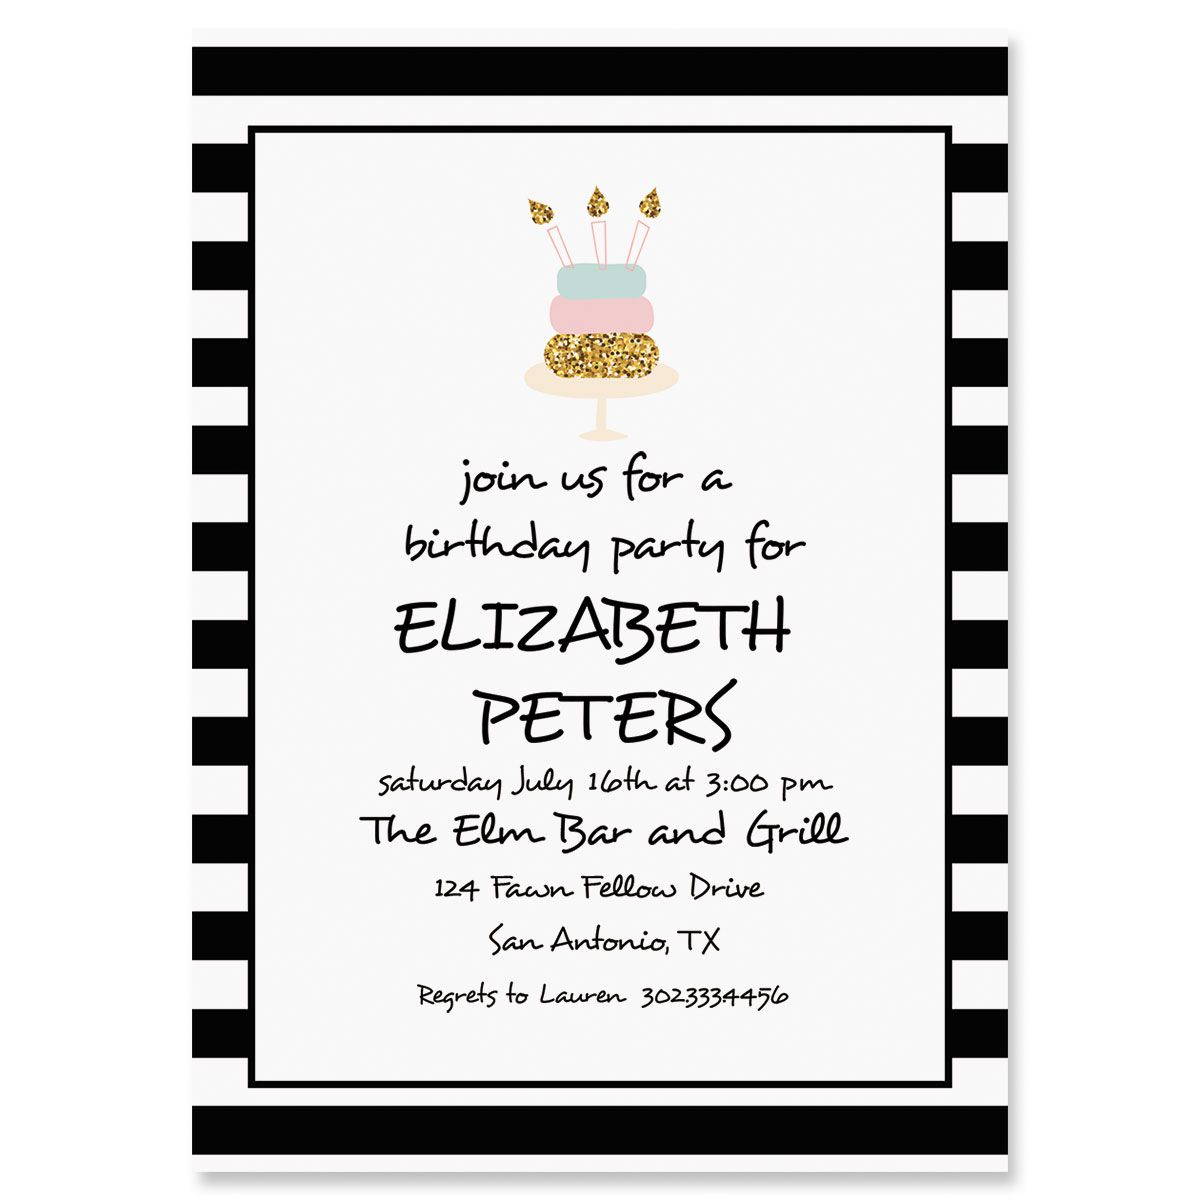 Personalized Stripes with Cake Invitations